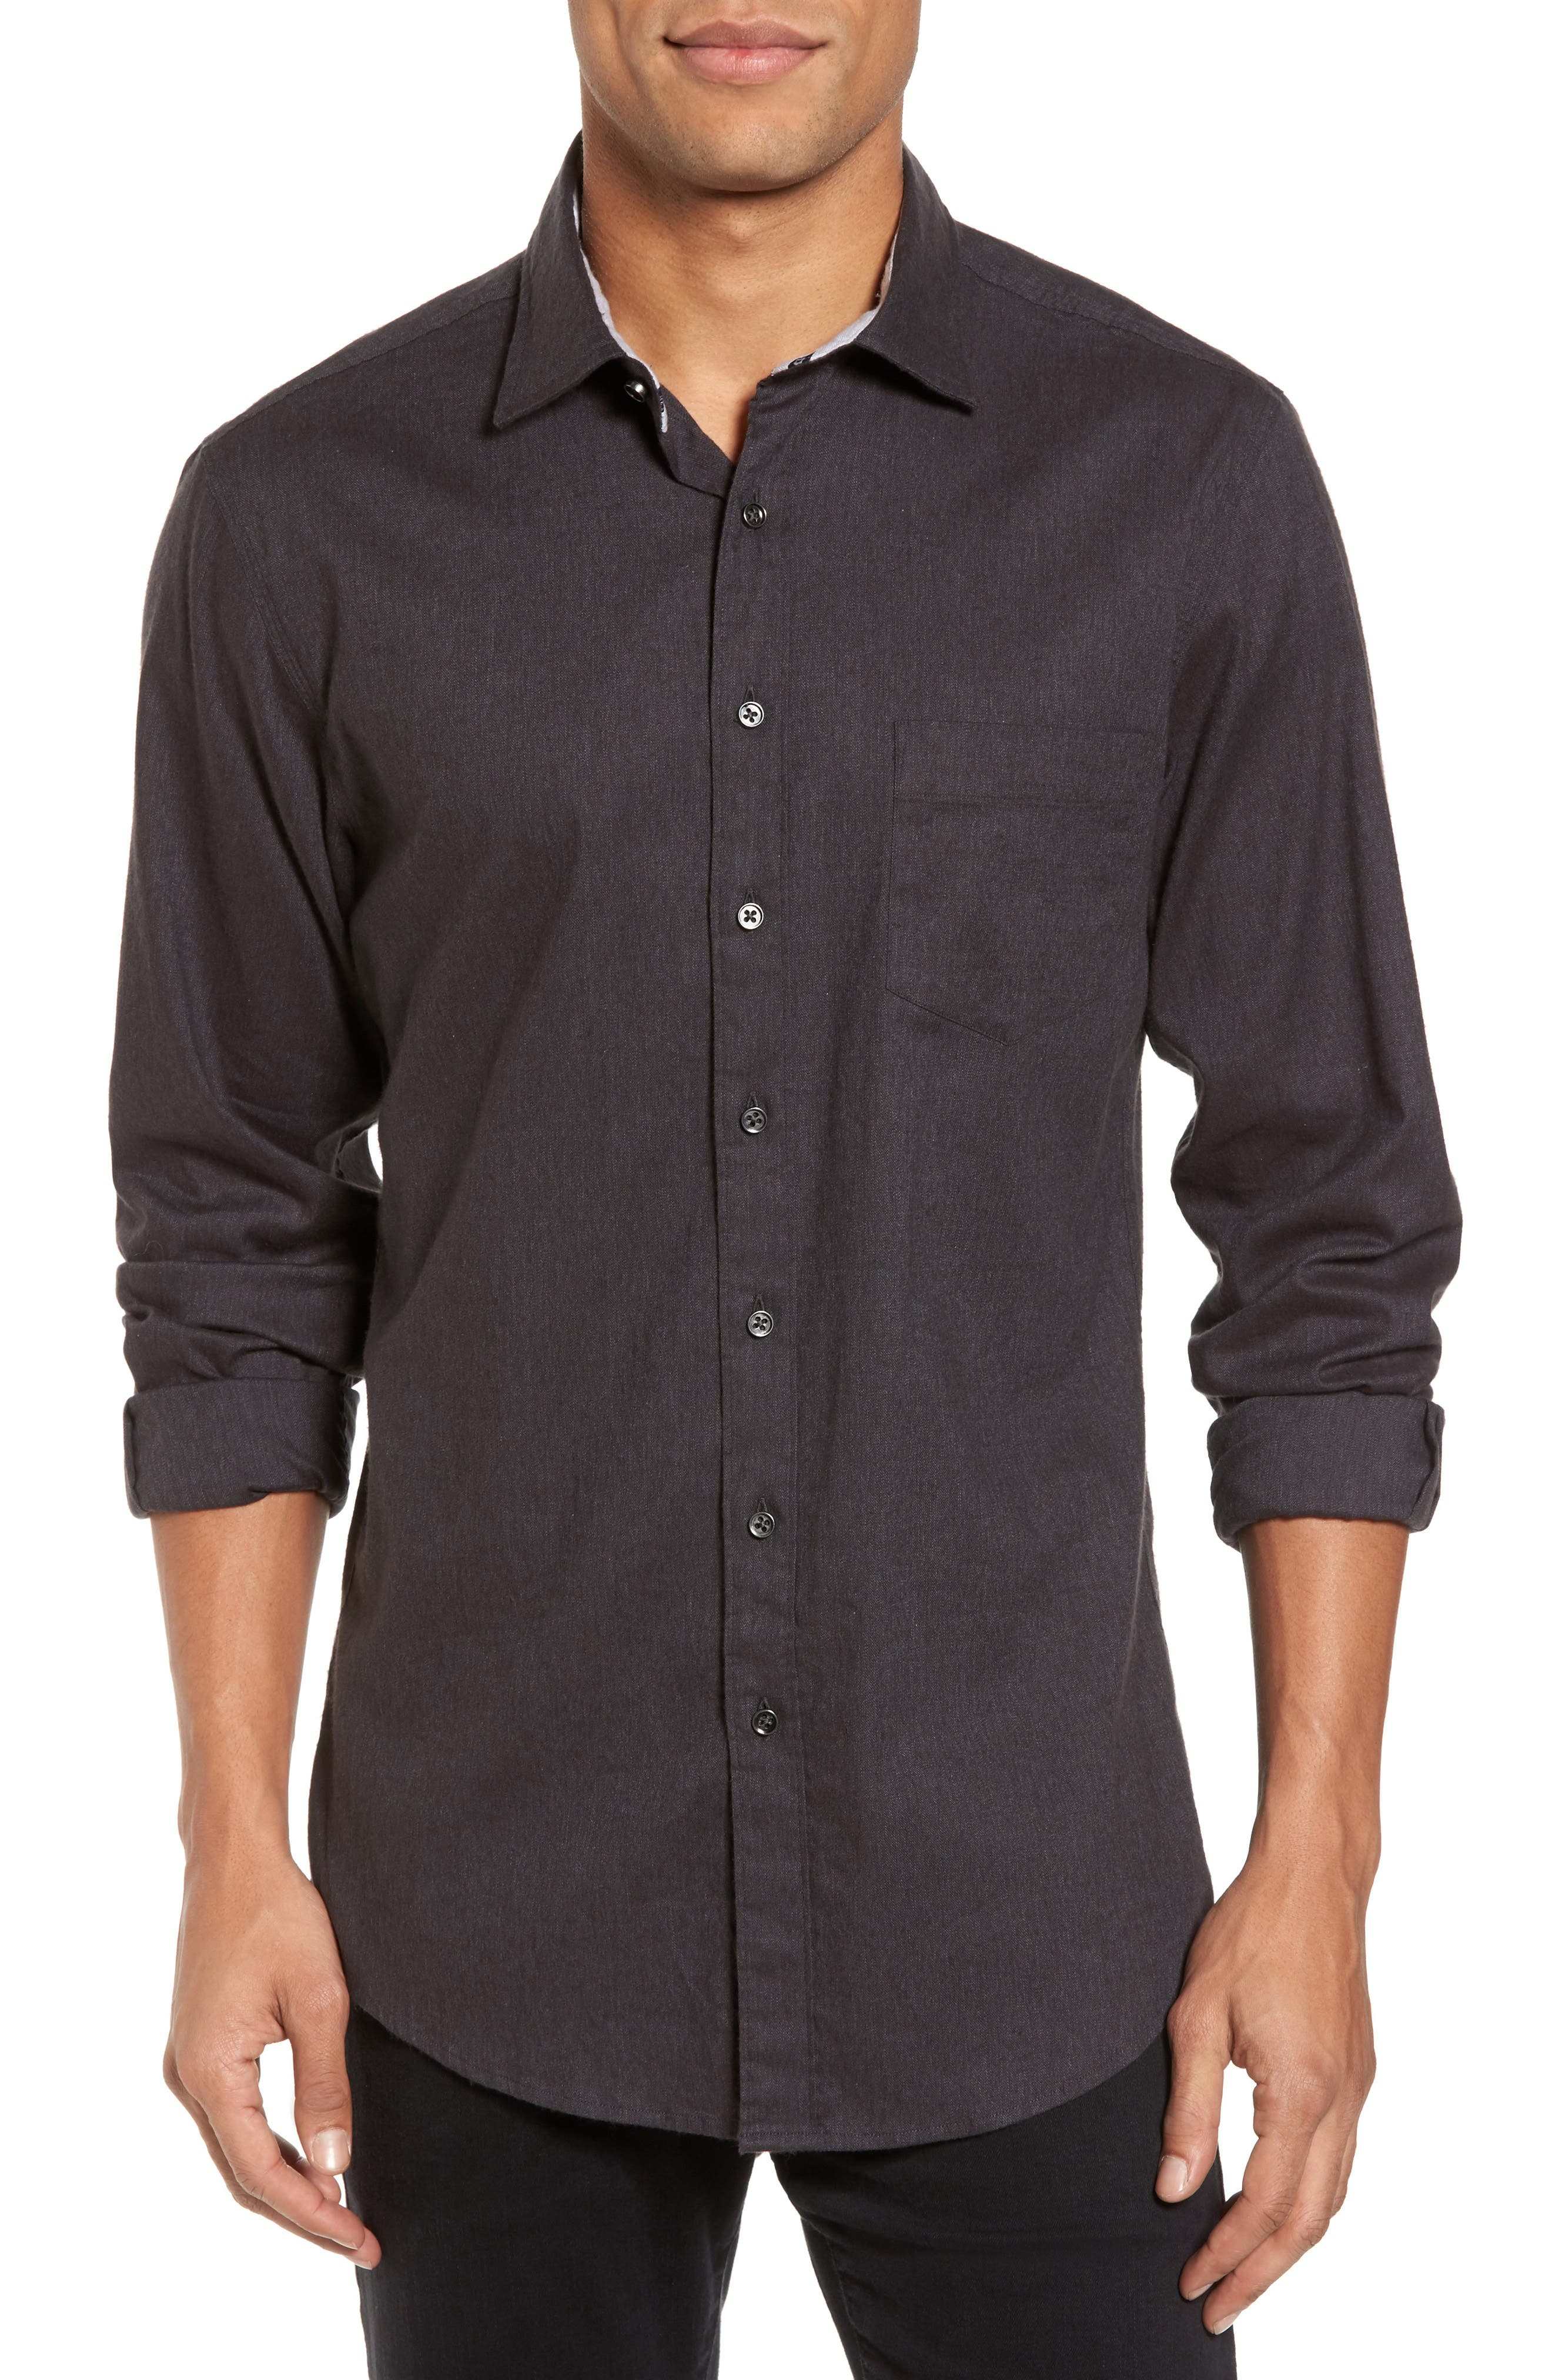 Image of RODD AND GUNN Sinclair Brushed Twill Trim Fit Shirt